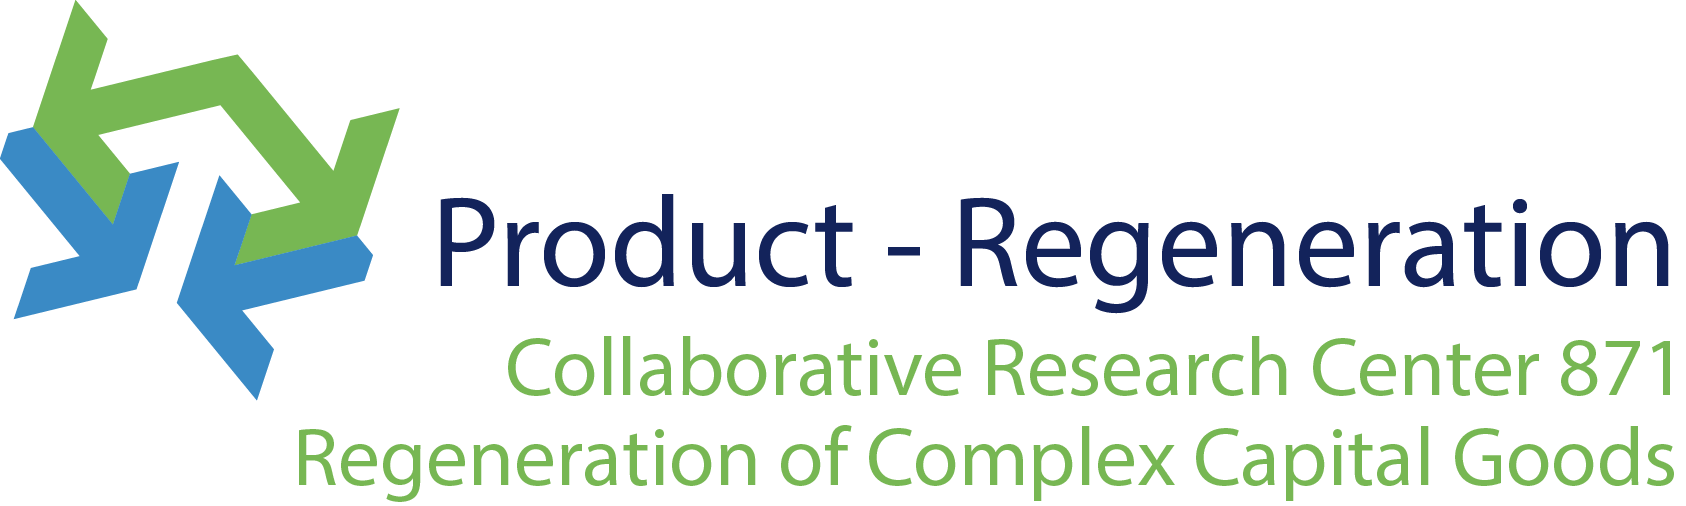 Logo Collaborative Research Center 871: Product-Regeneration